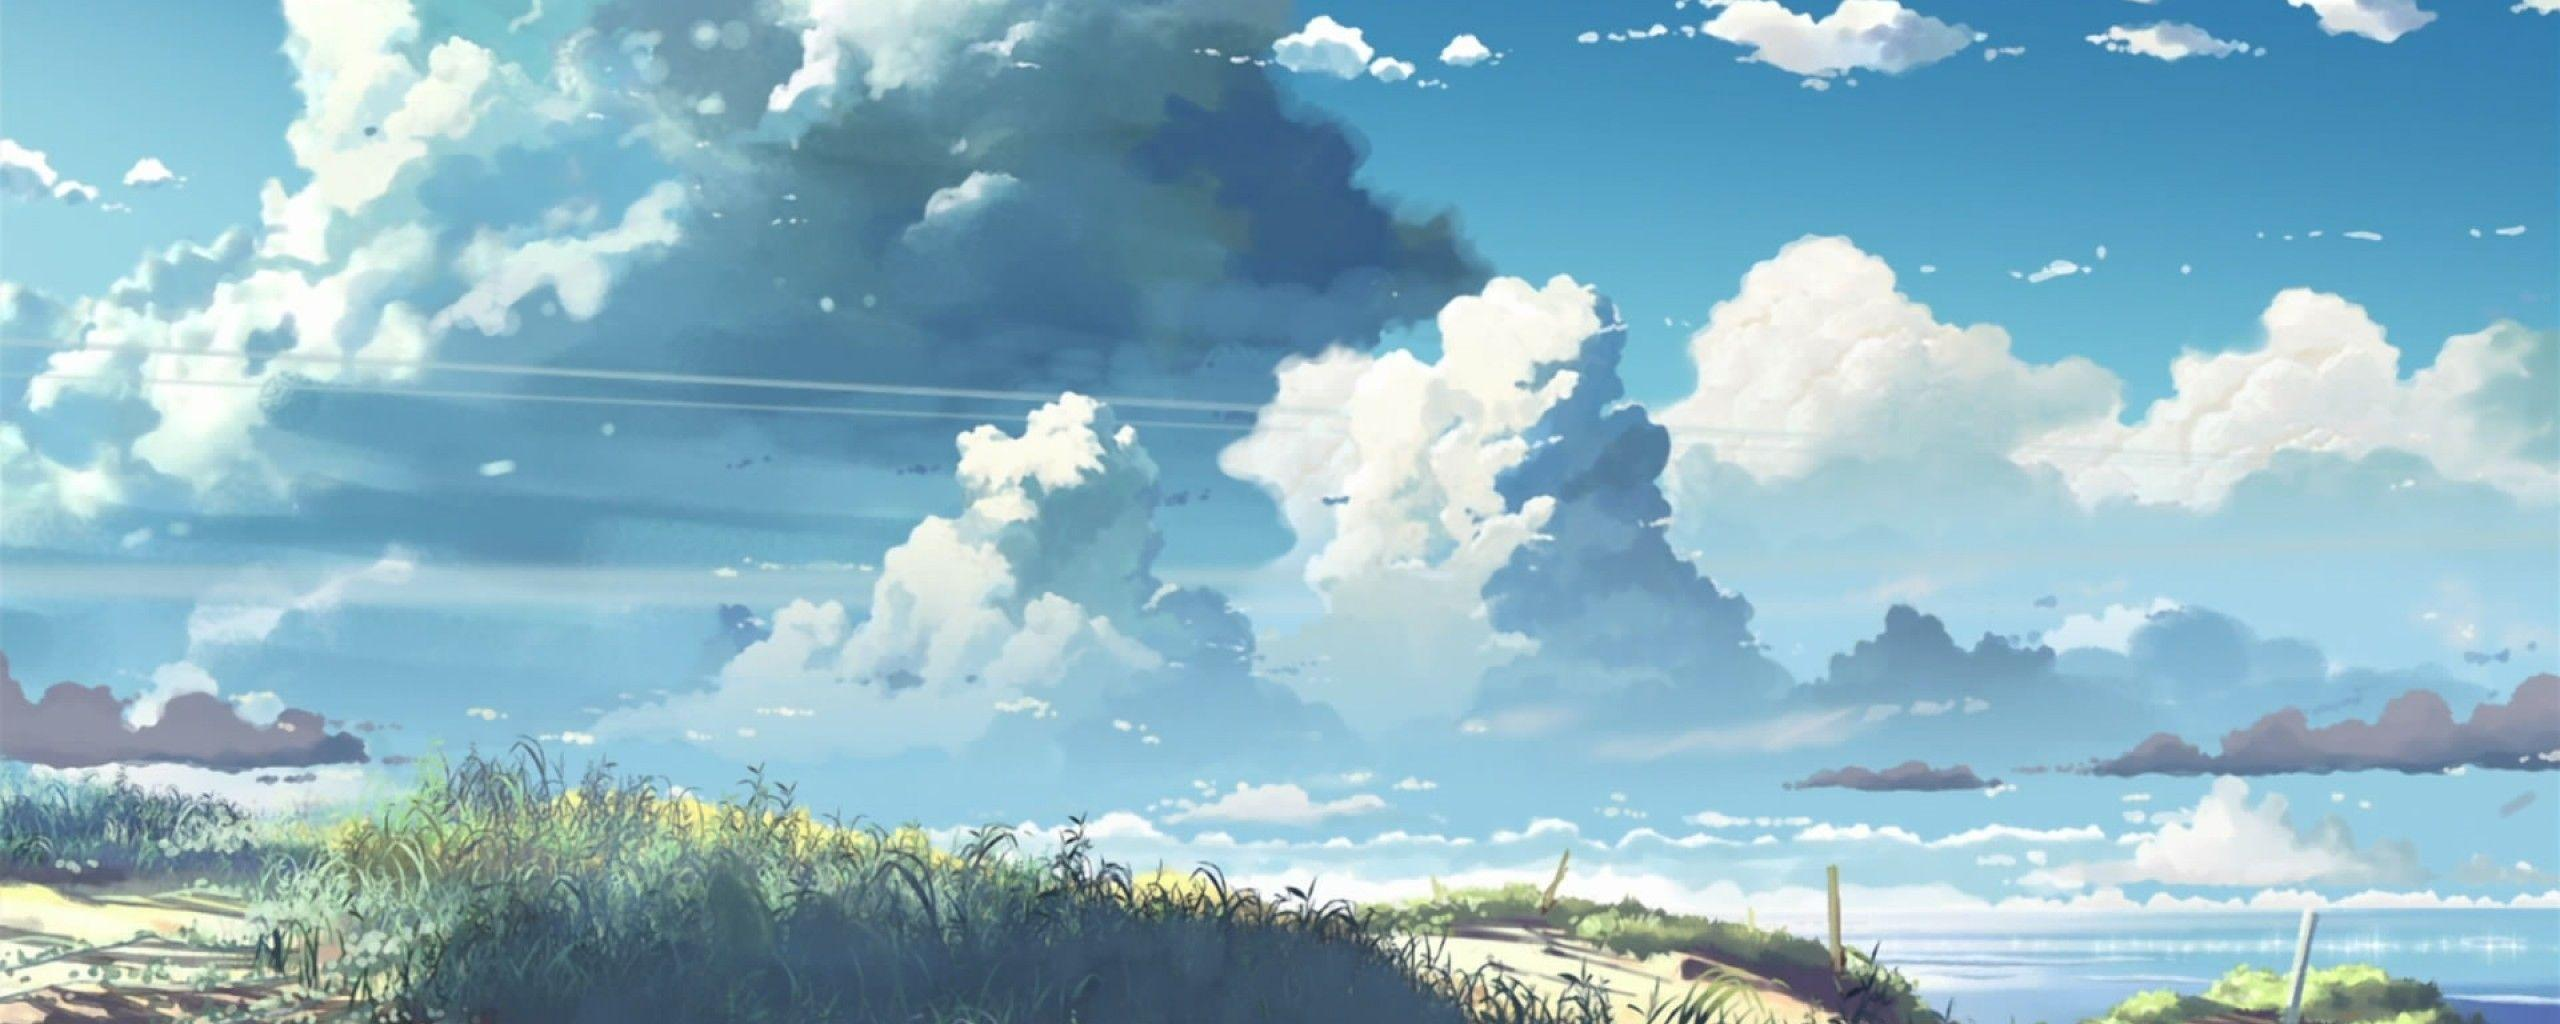 5 Centimeters Per Second Wallpapers Wallpaper Cave